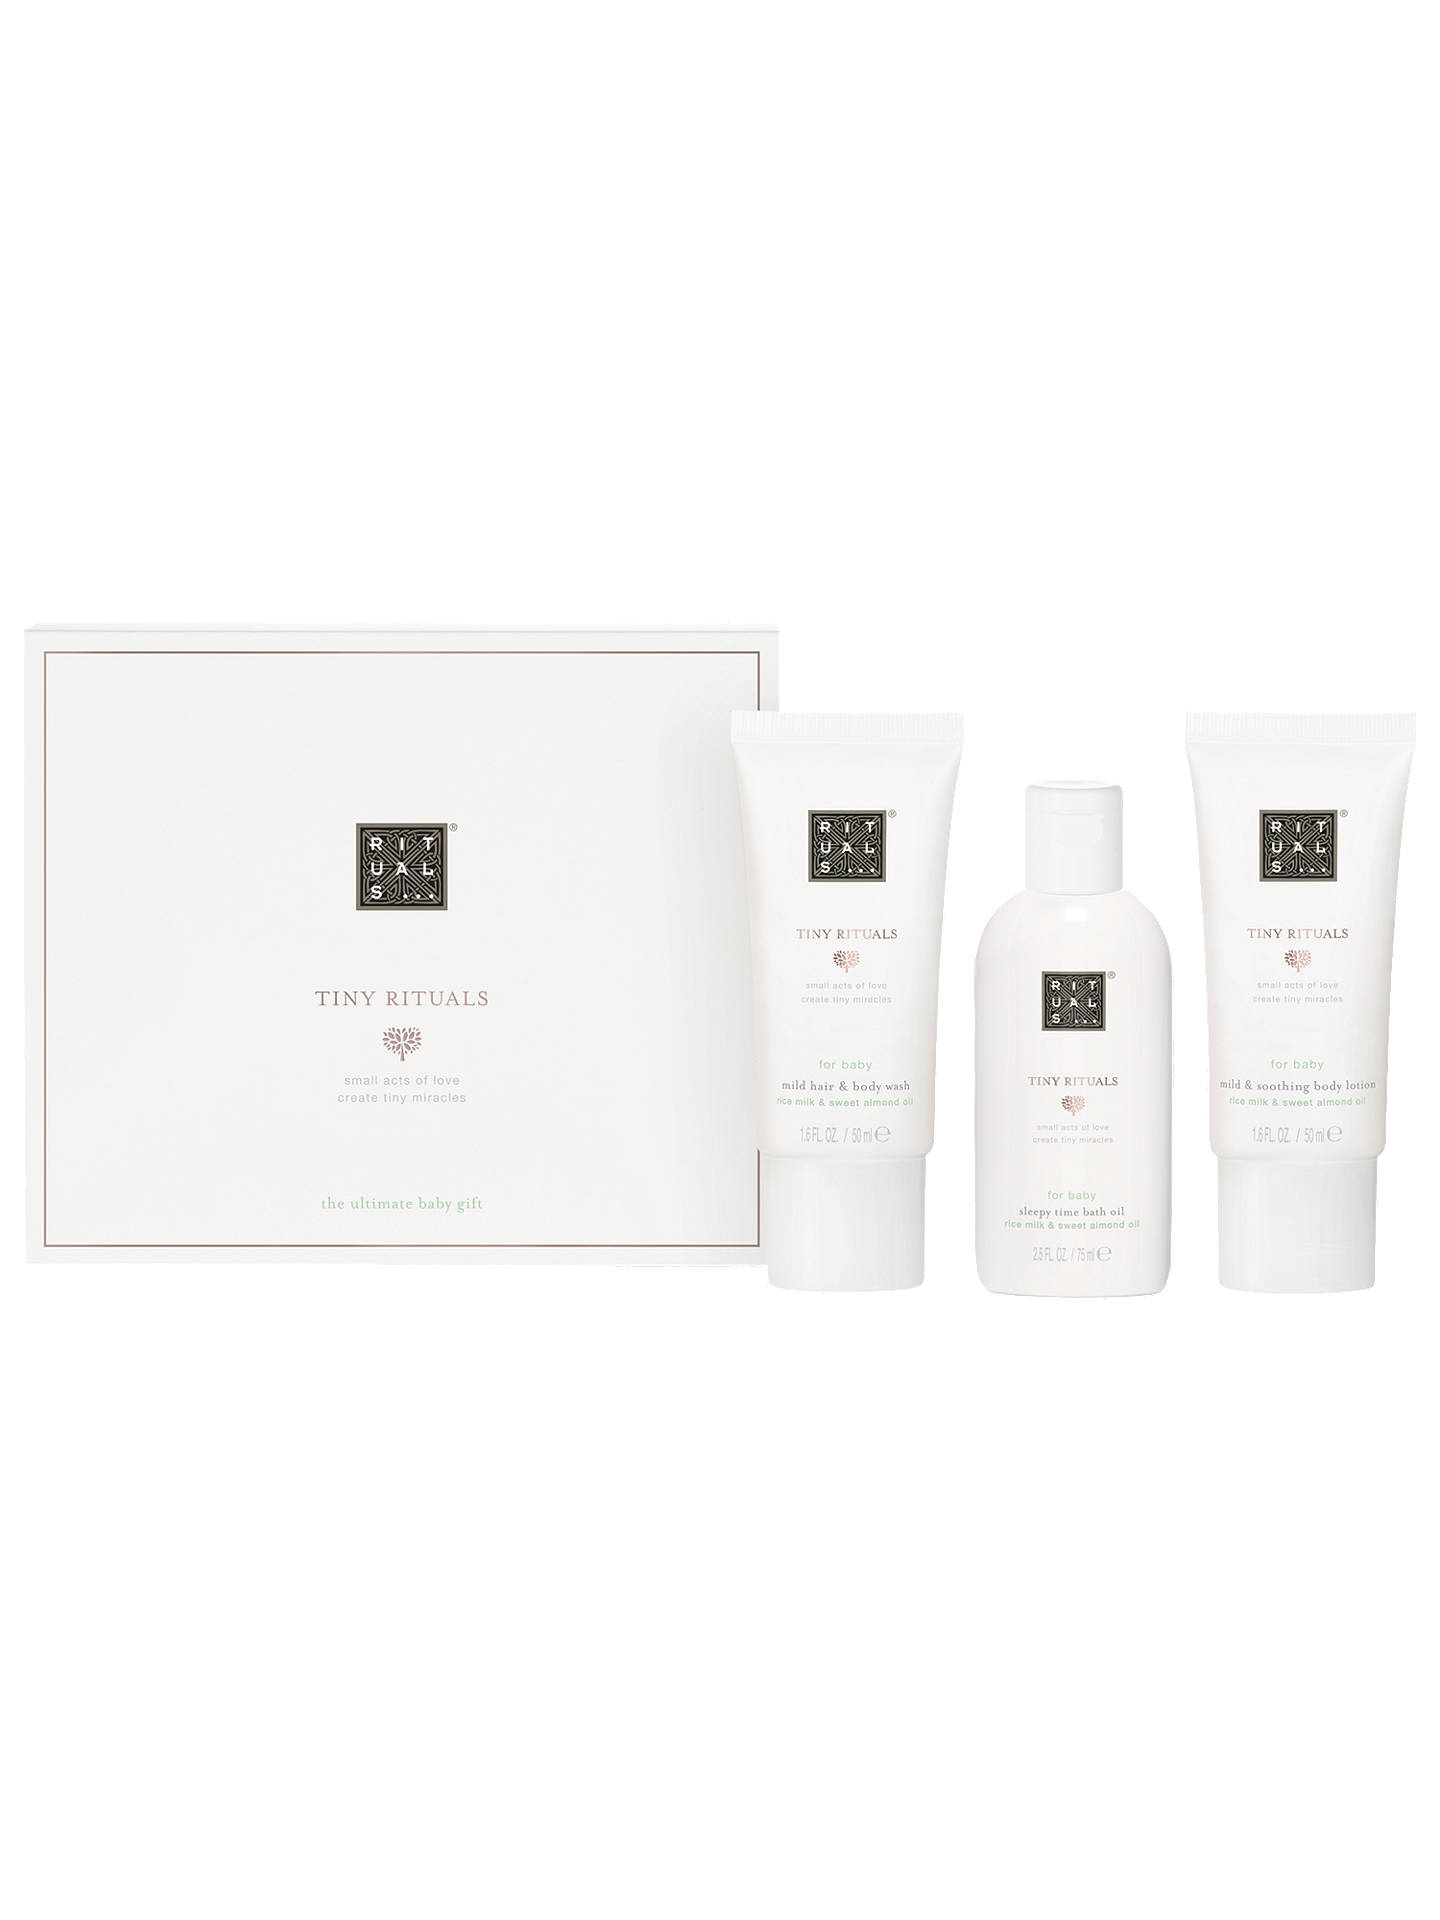 ff3083638cc69 Buy Tiny Rituals Baby Gift Set Online at johnlewis.com ...